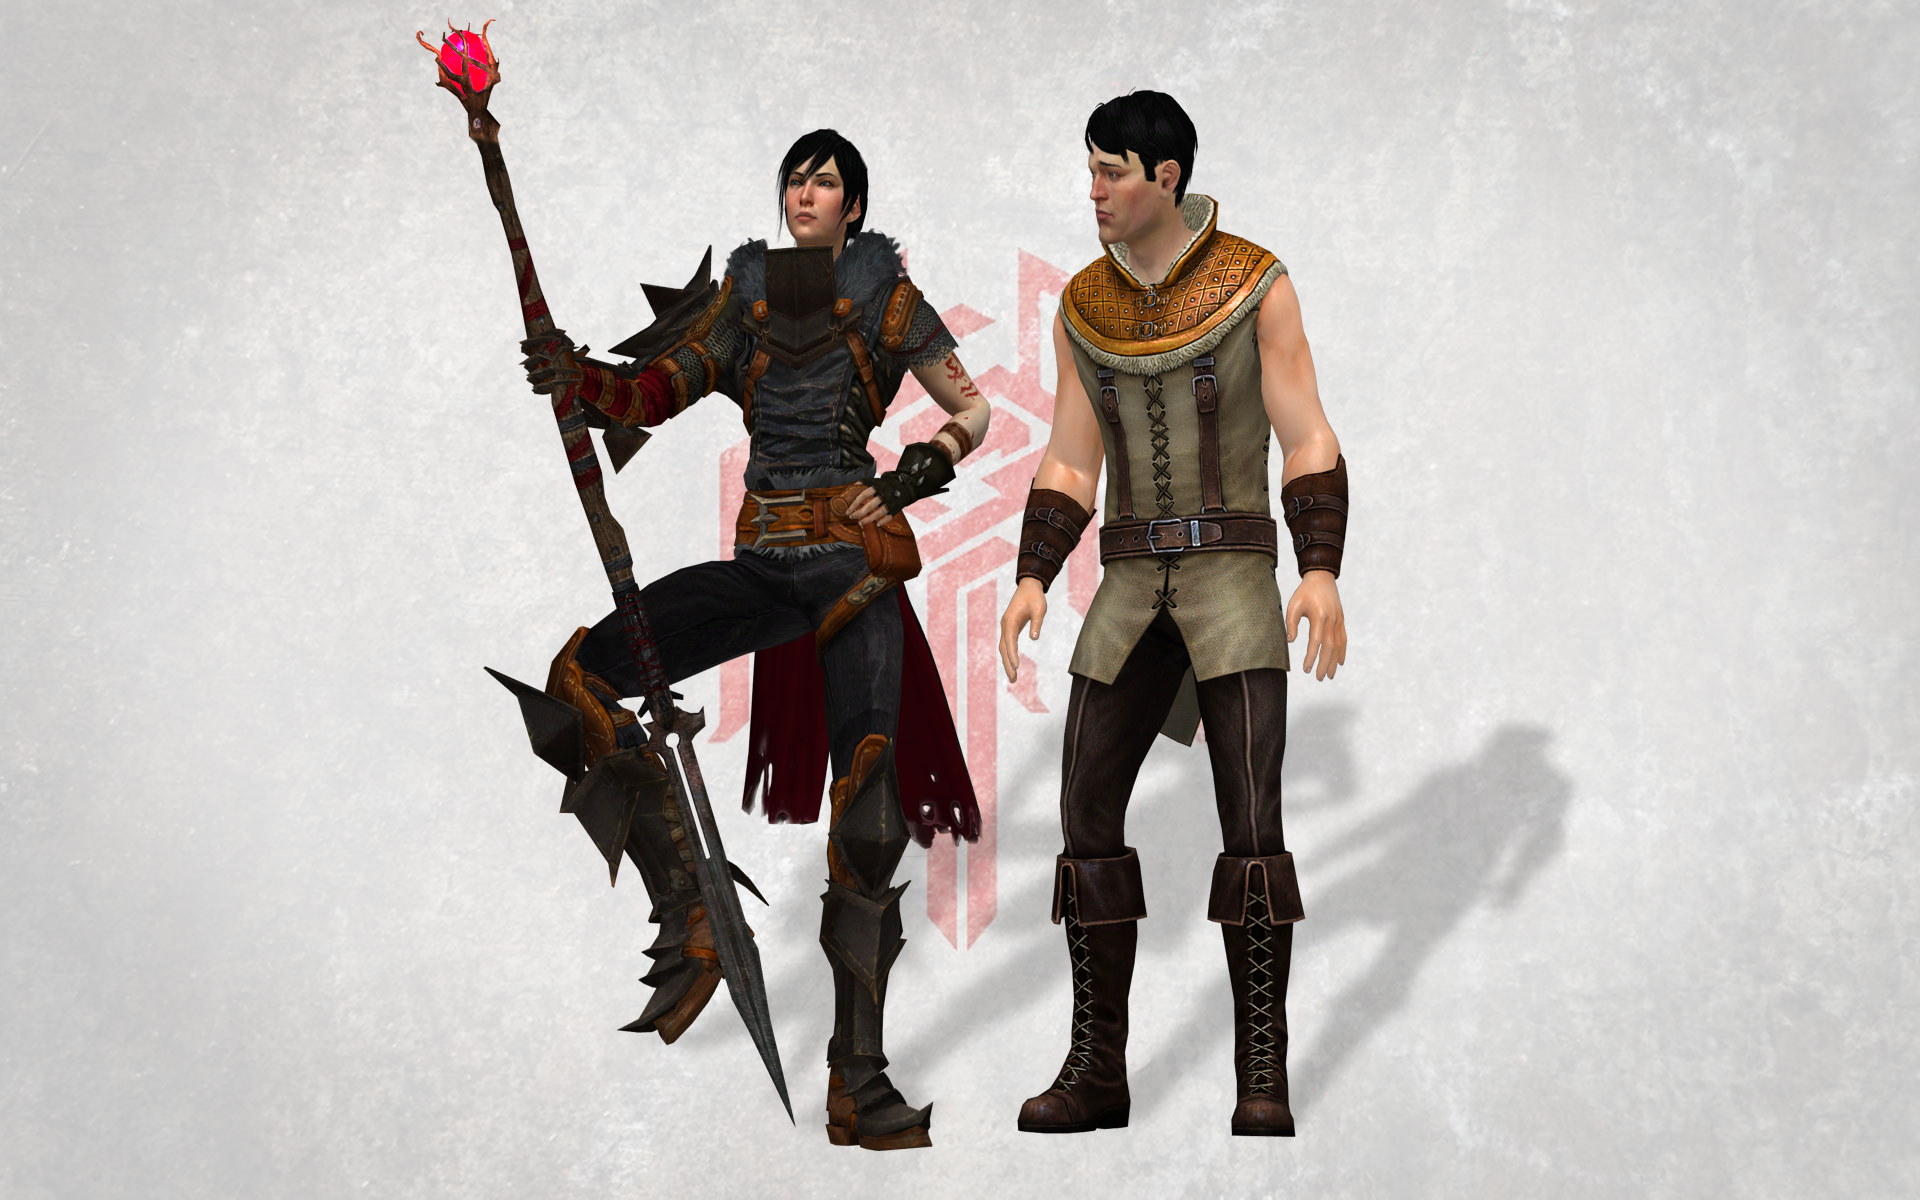 Dragon Age 2 : Marian and Carver by DOOM4Rus on DeviantArt